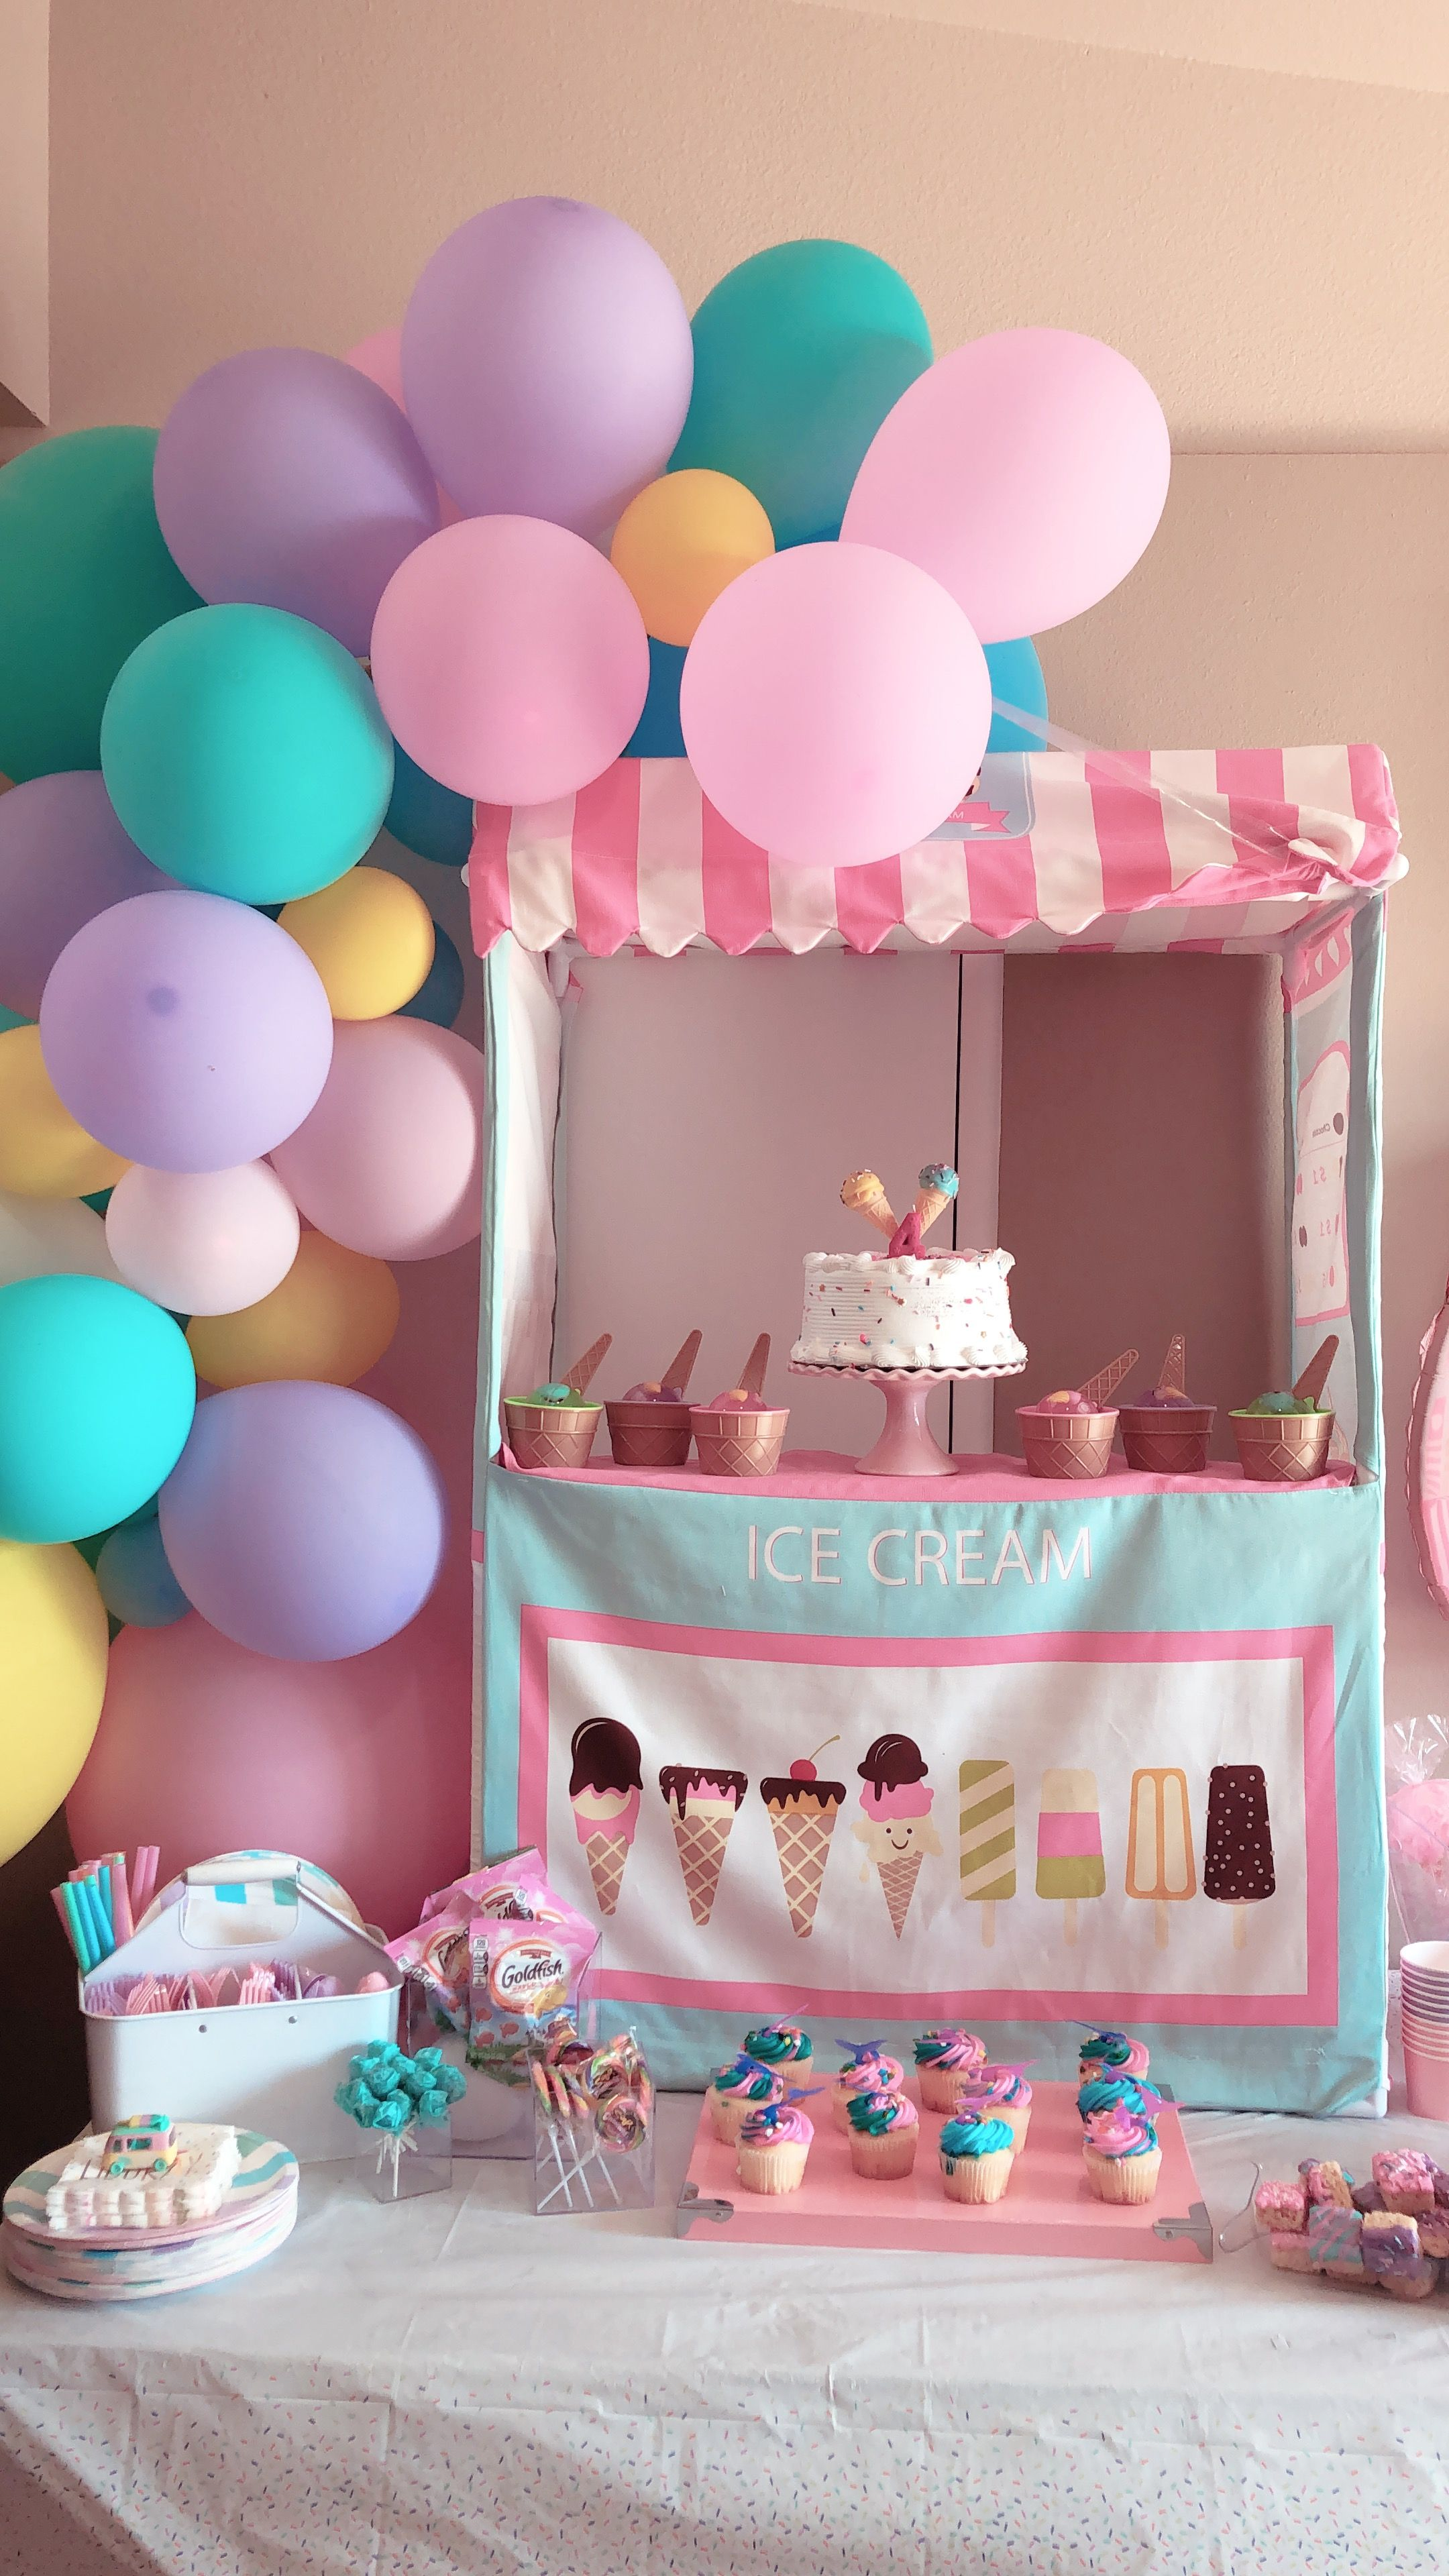 ice cream birthday party for my 4 year old | birthday party ideas in